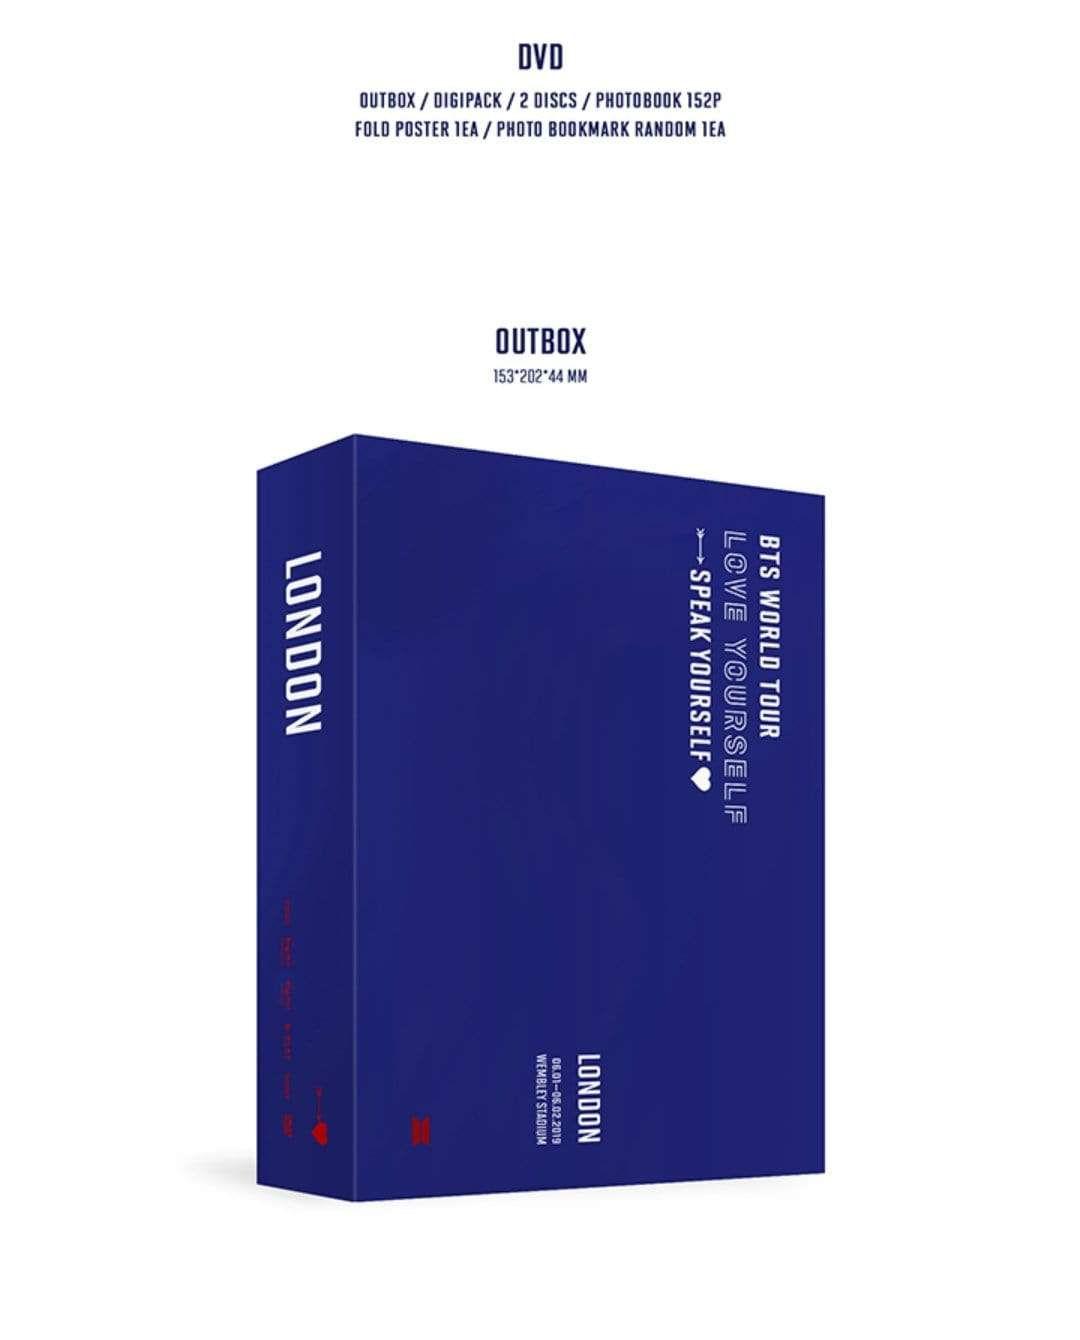 [PRE-ORDER] BANGTAN7 LOVE YOURSELF: SPEAK YOURSELF LONDON OFFICIAL DVD